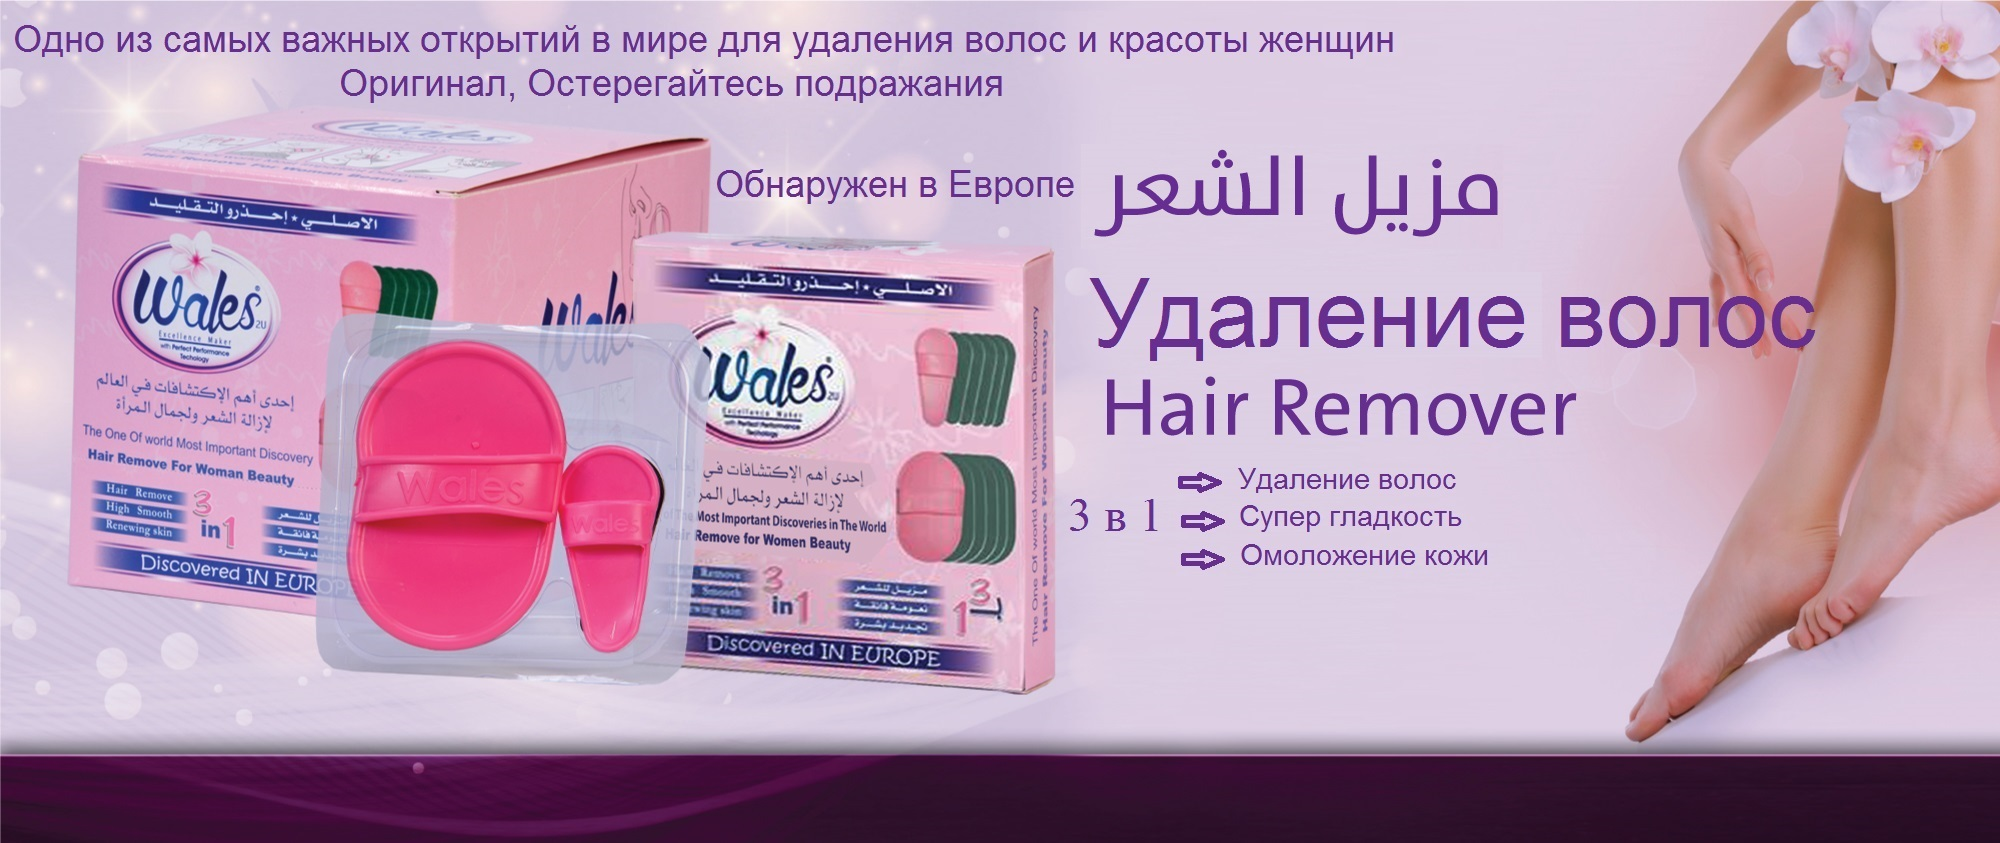 0hair_remover_banner_home